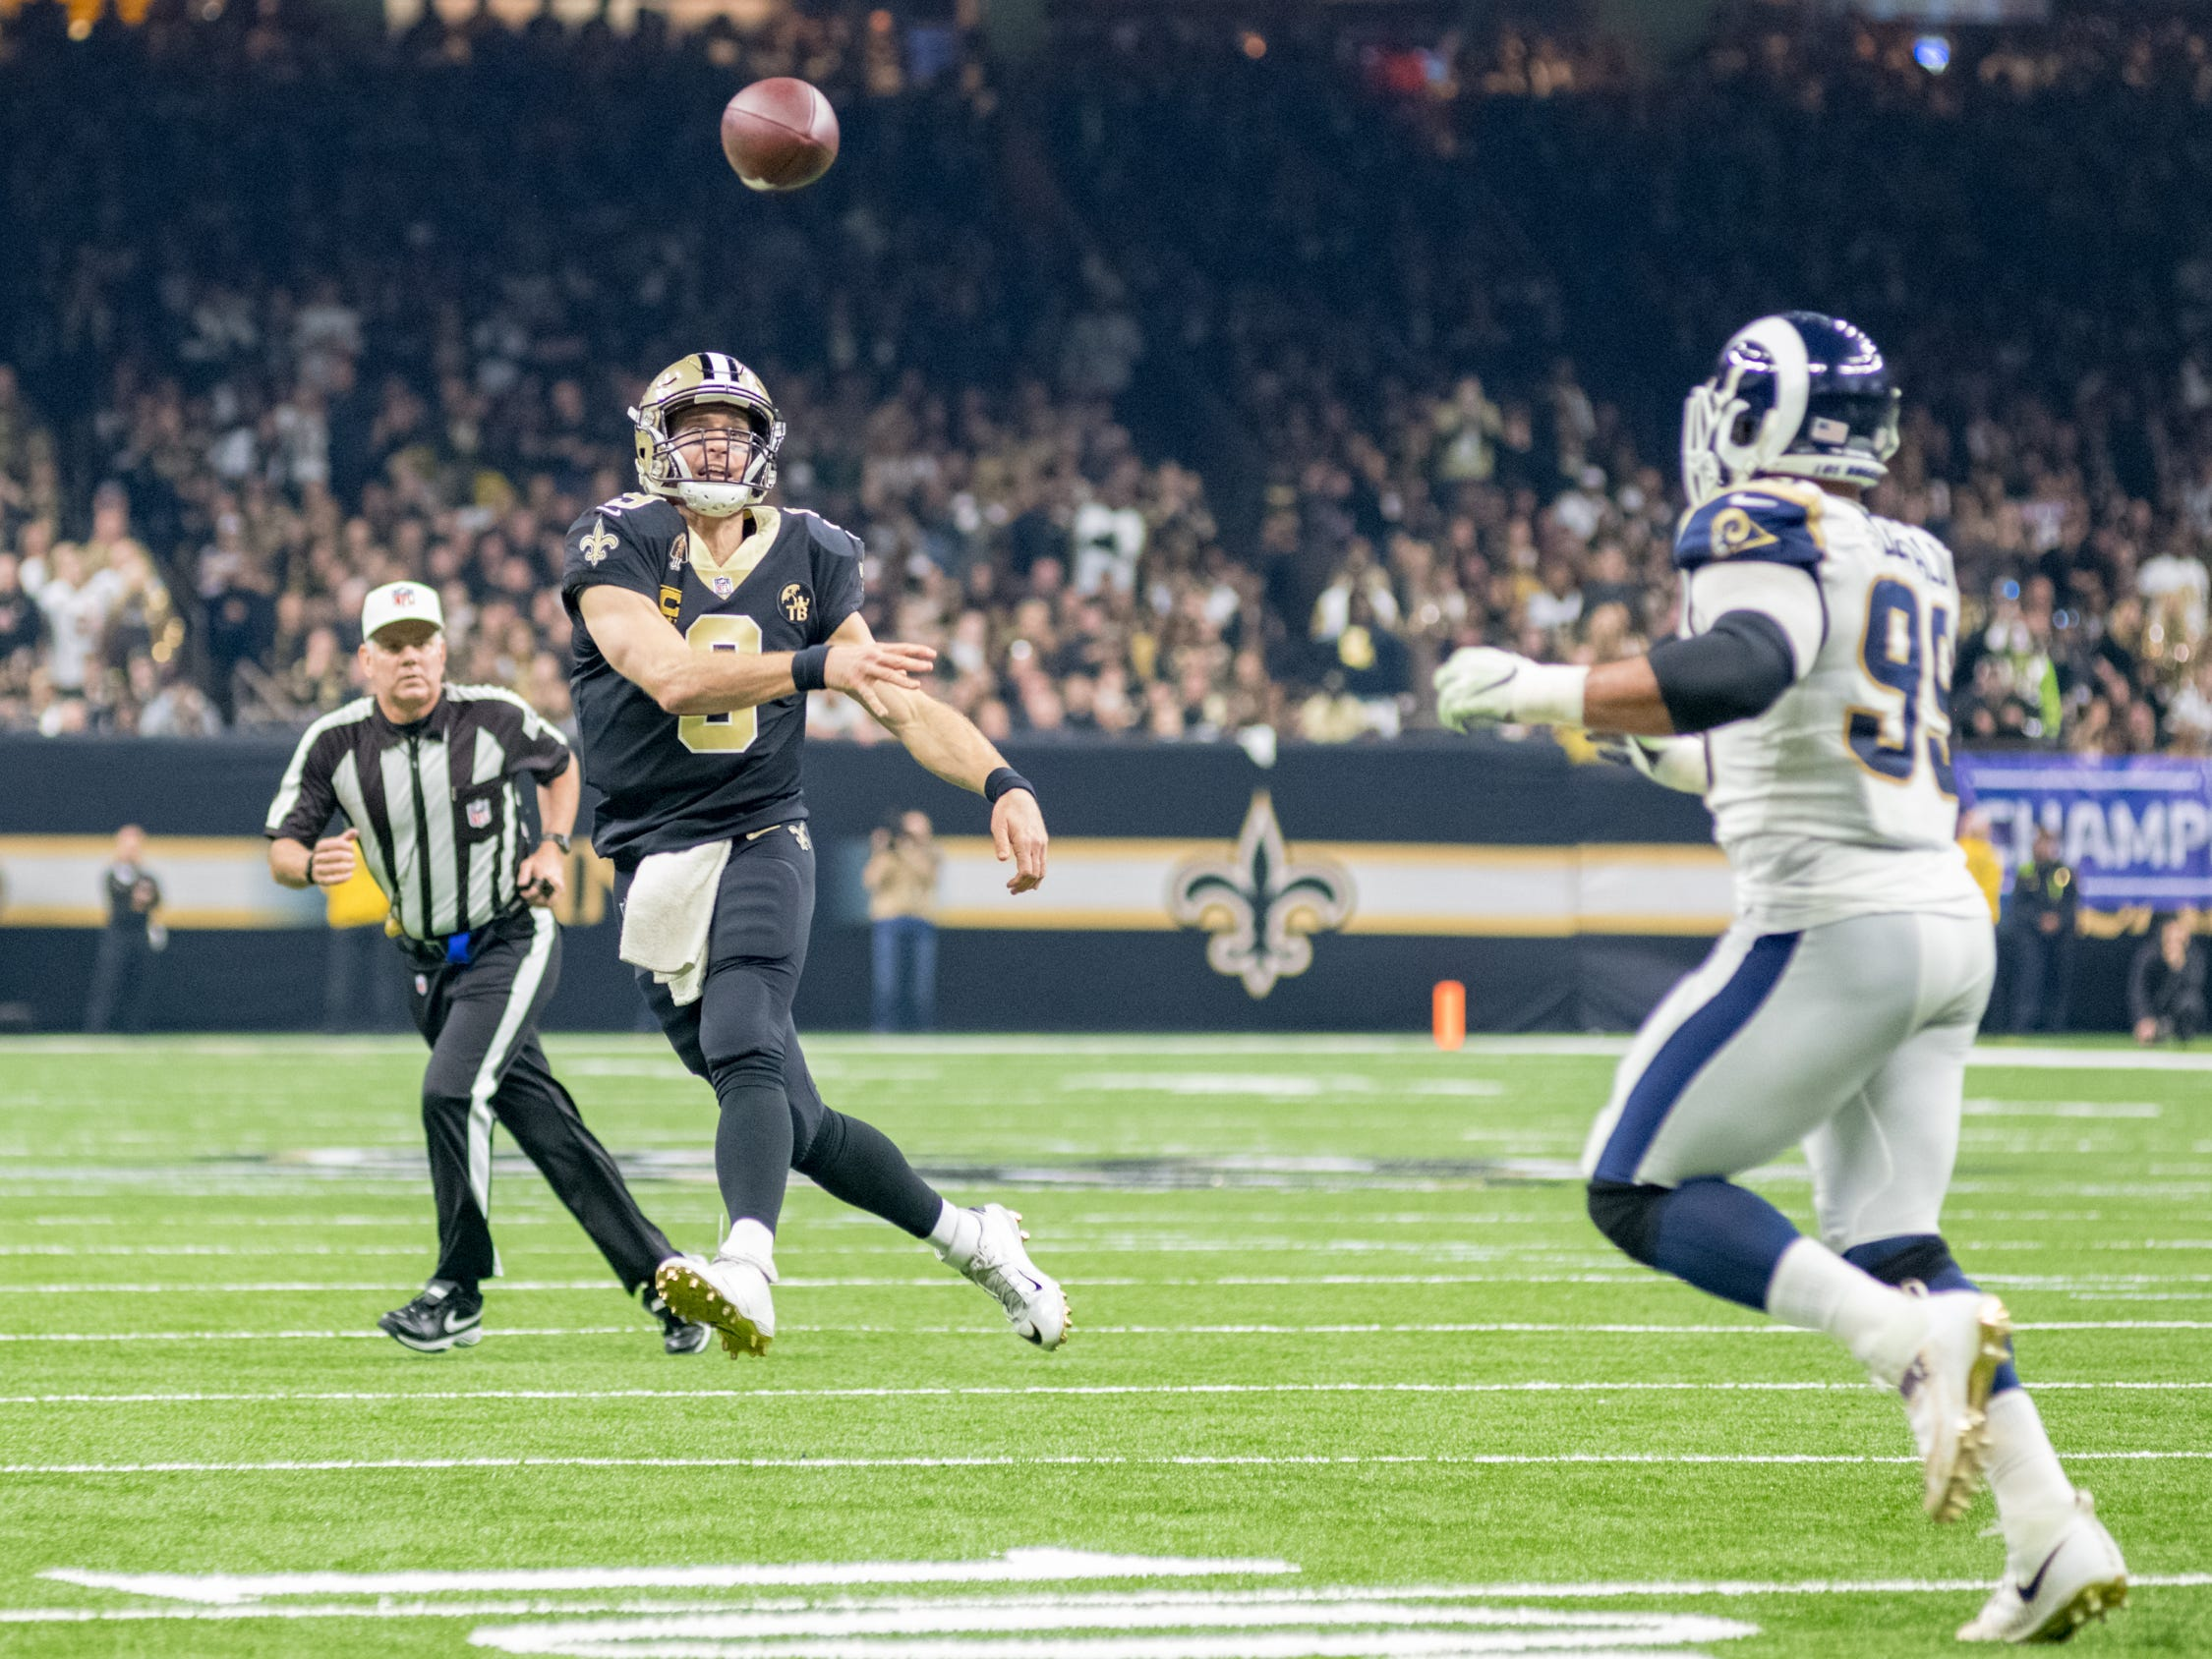 Saints quarterback Drew Brees during the NFC Championship playoff football game between the New Orleans Saints and the Los Angeles Rams at the Mercedes-Benz Superdome in New Orleans. Sunday, Jan. 20, 2019.